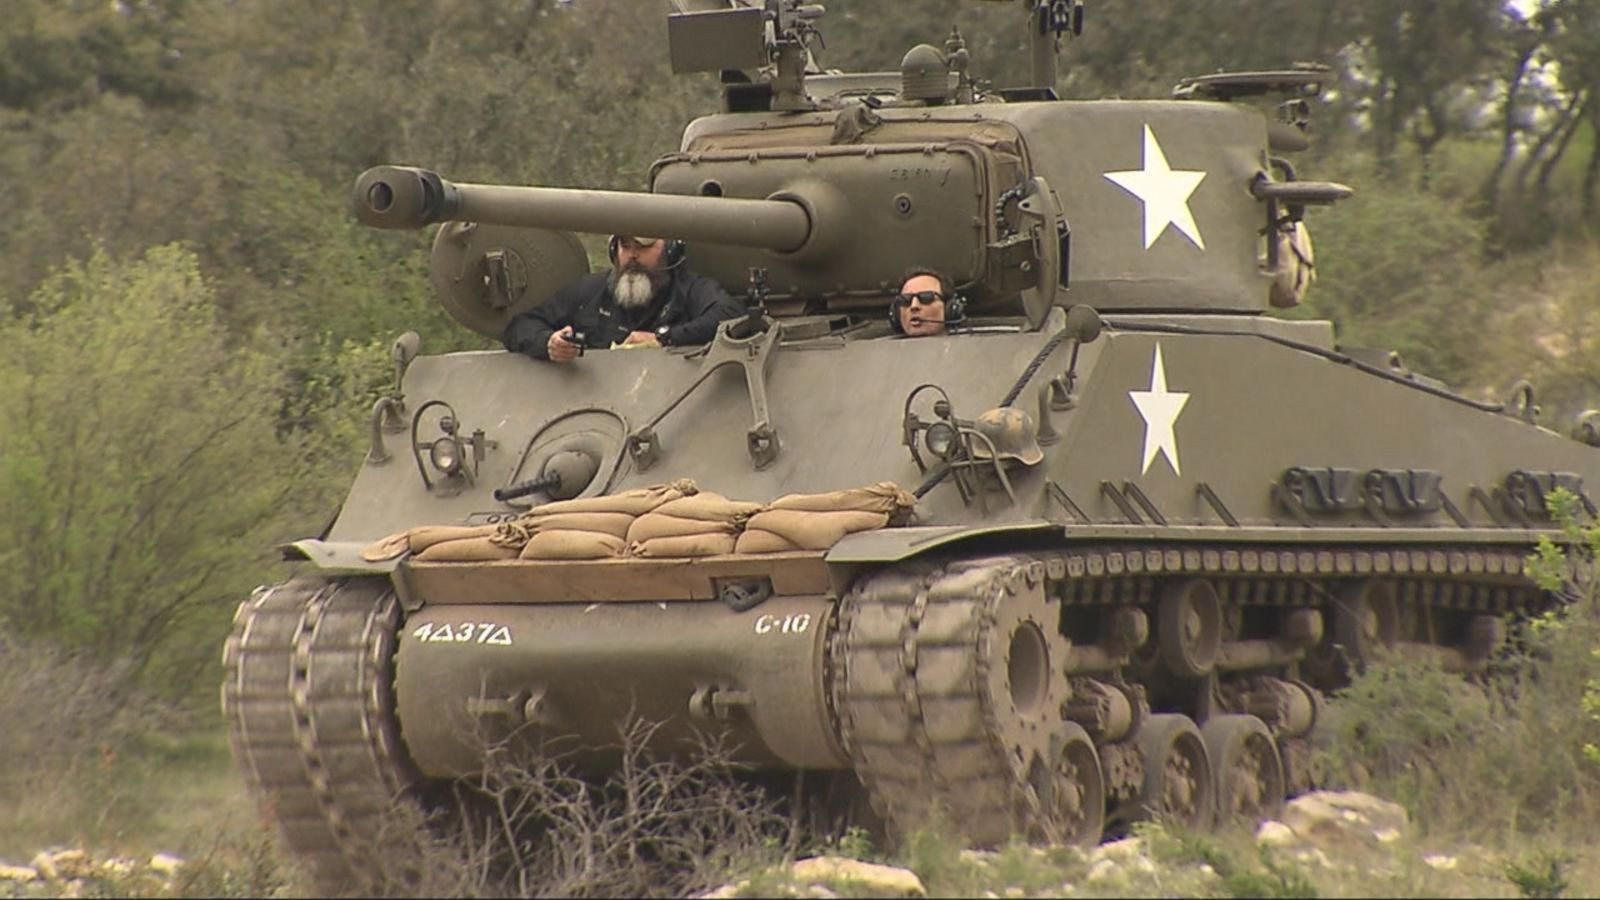 Drive A Tank >> This Texas Company Lets You Spend Spring Break Driving Real